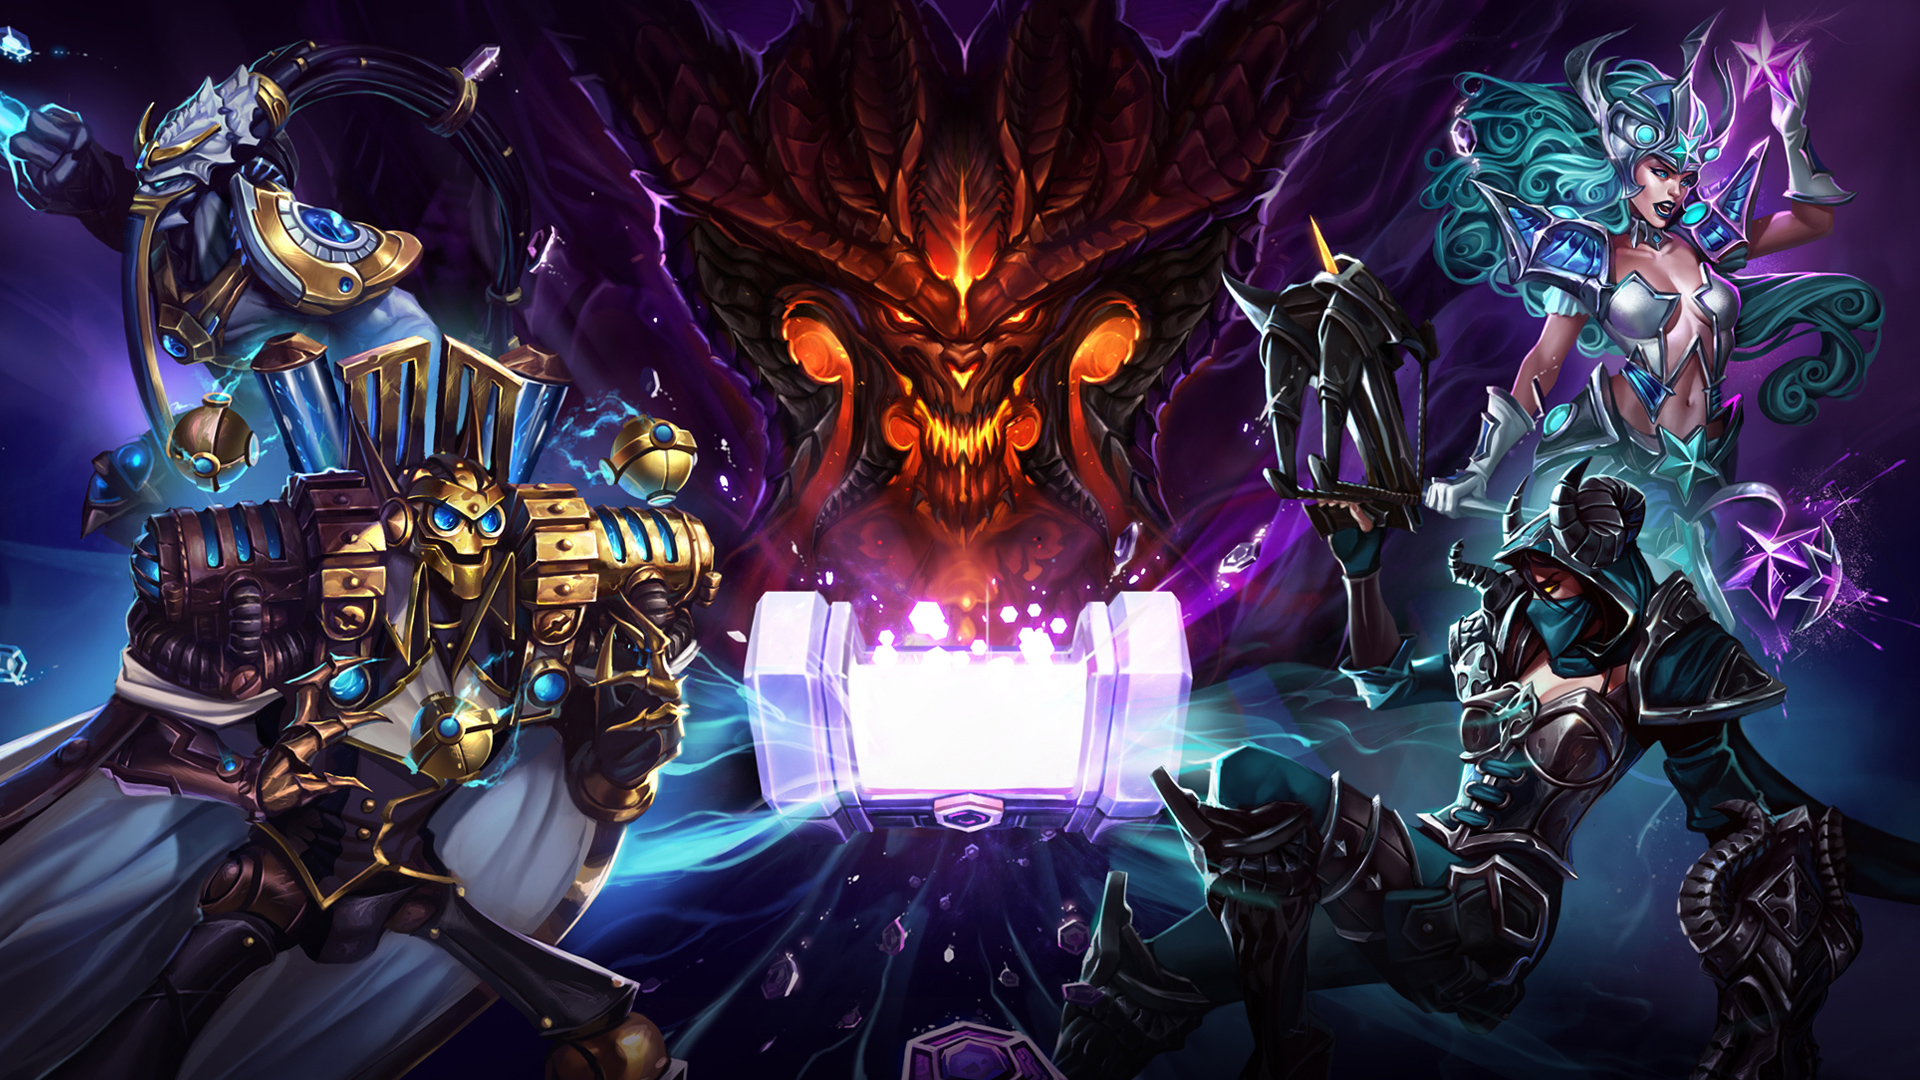 Blizzard is giving out 20 characters in Heroes of the Storm screenshot